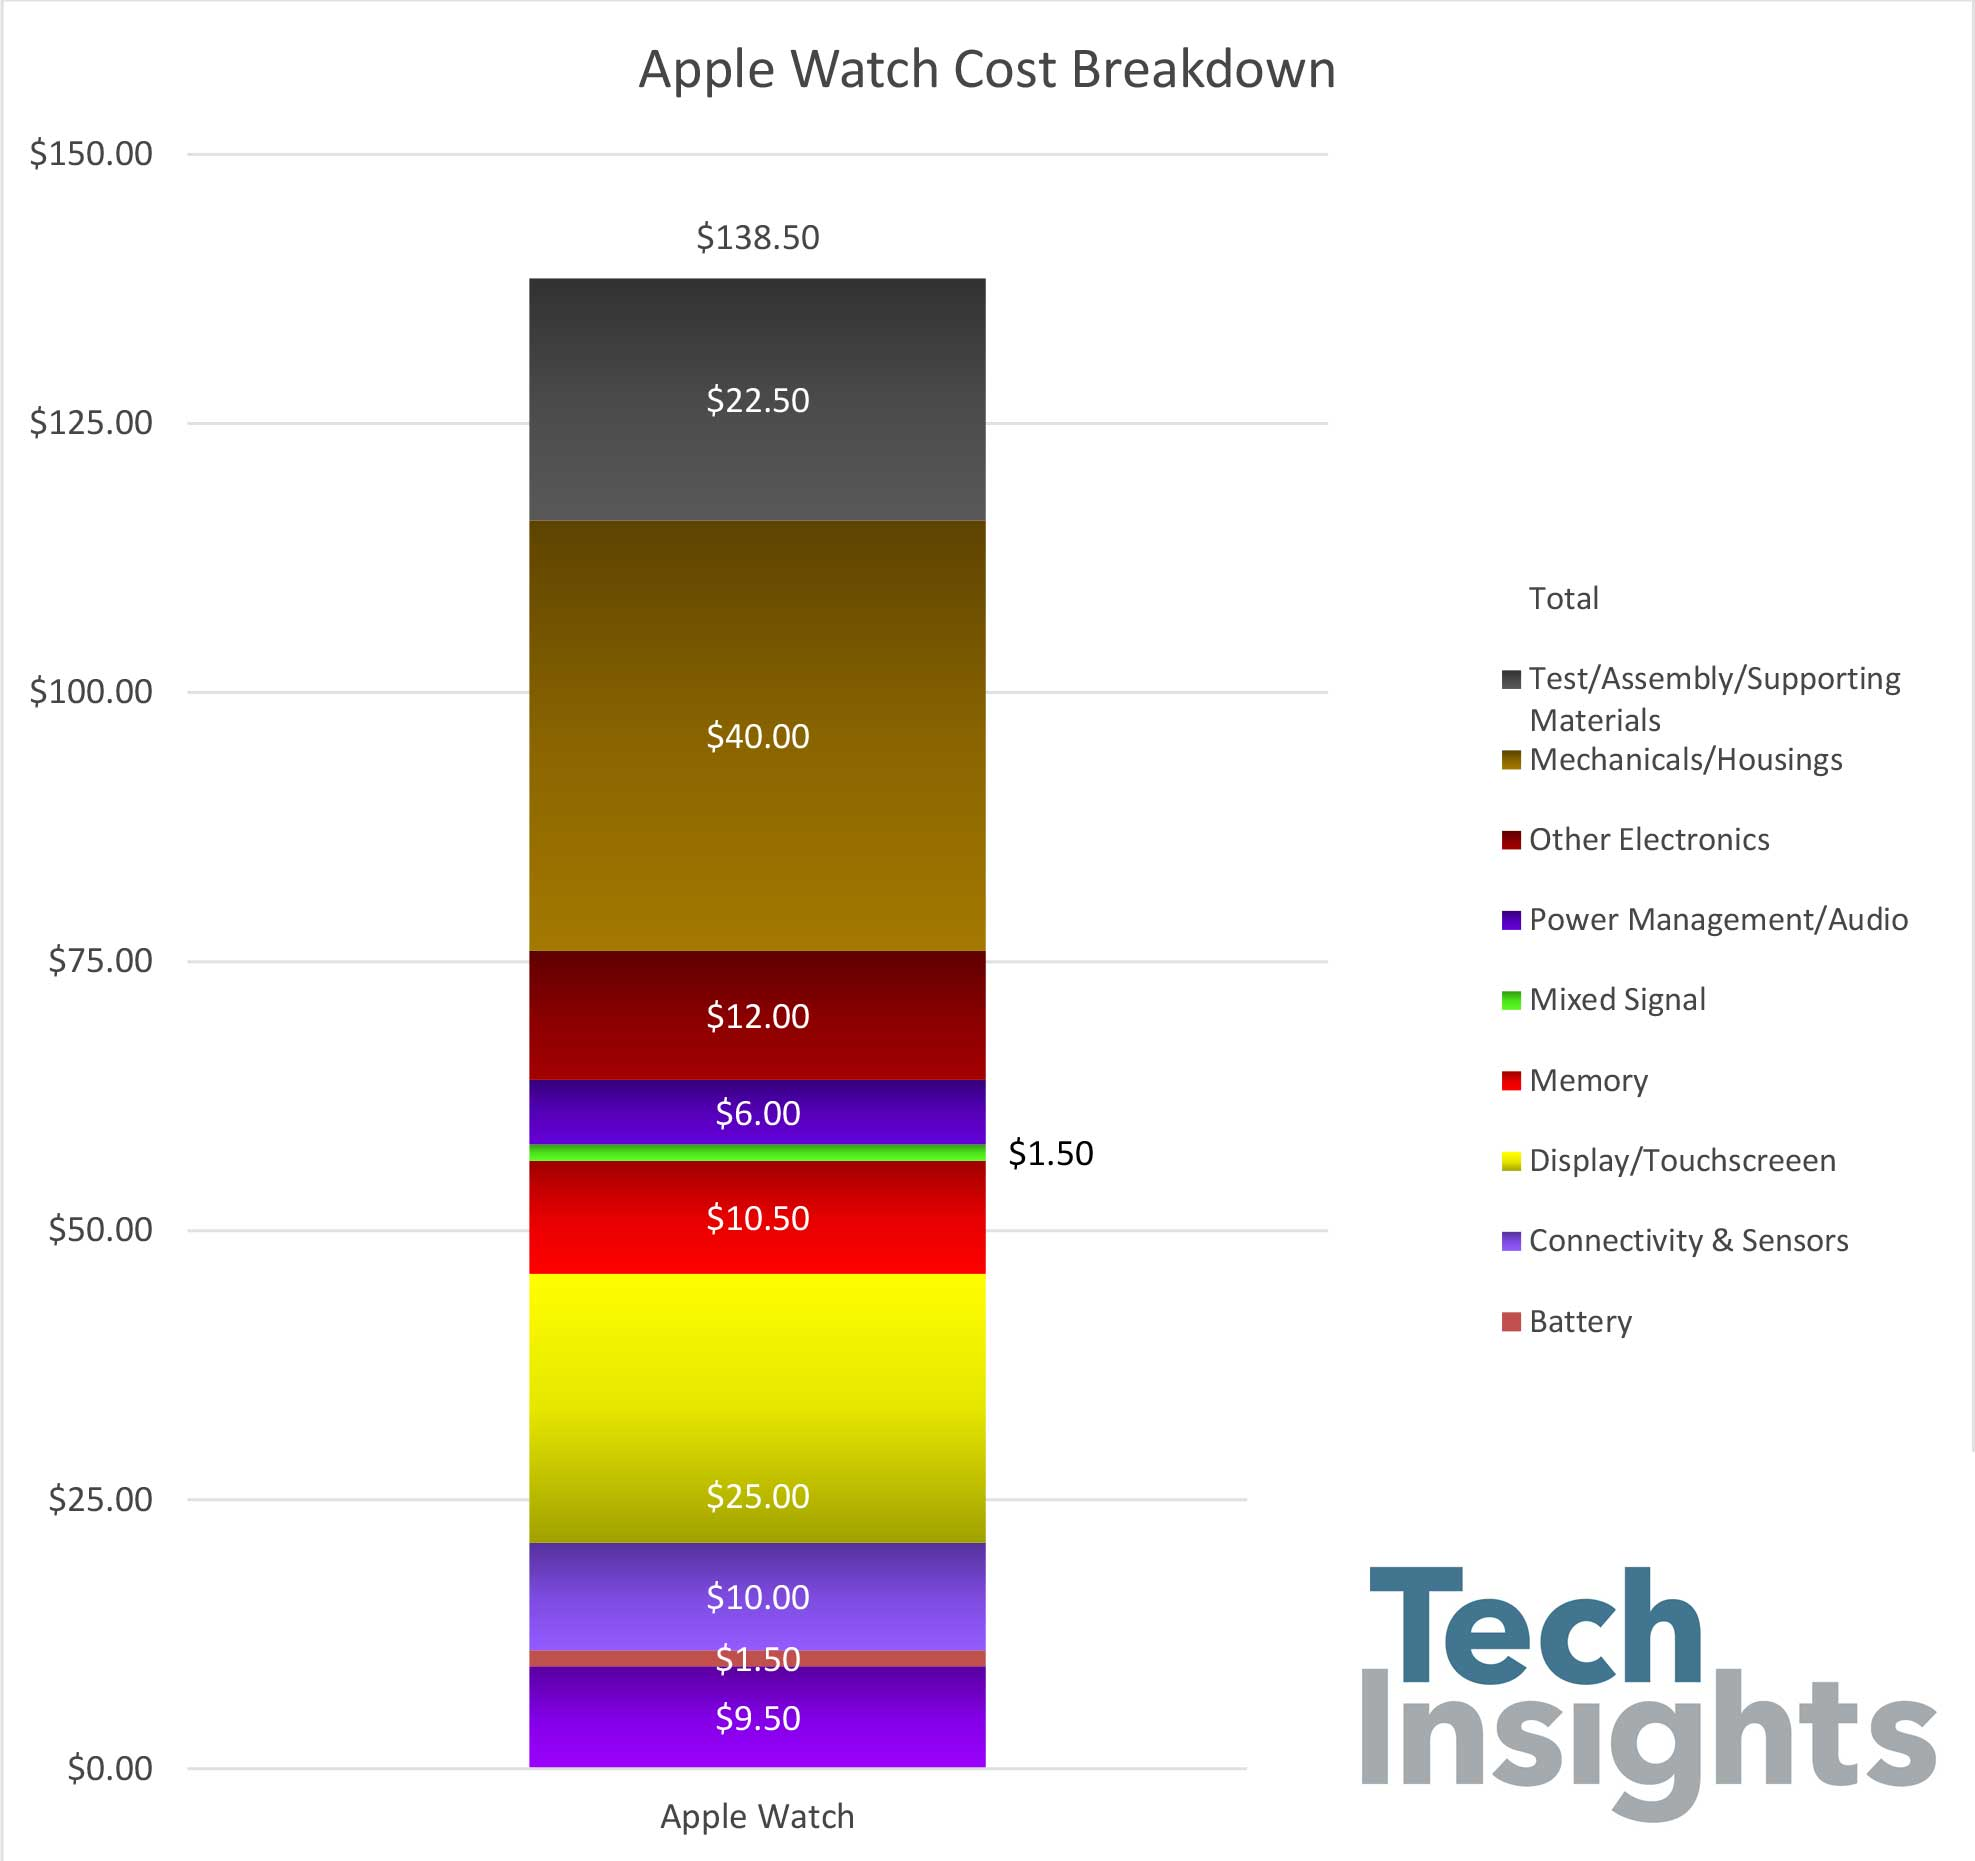 Apple Watch Cost